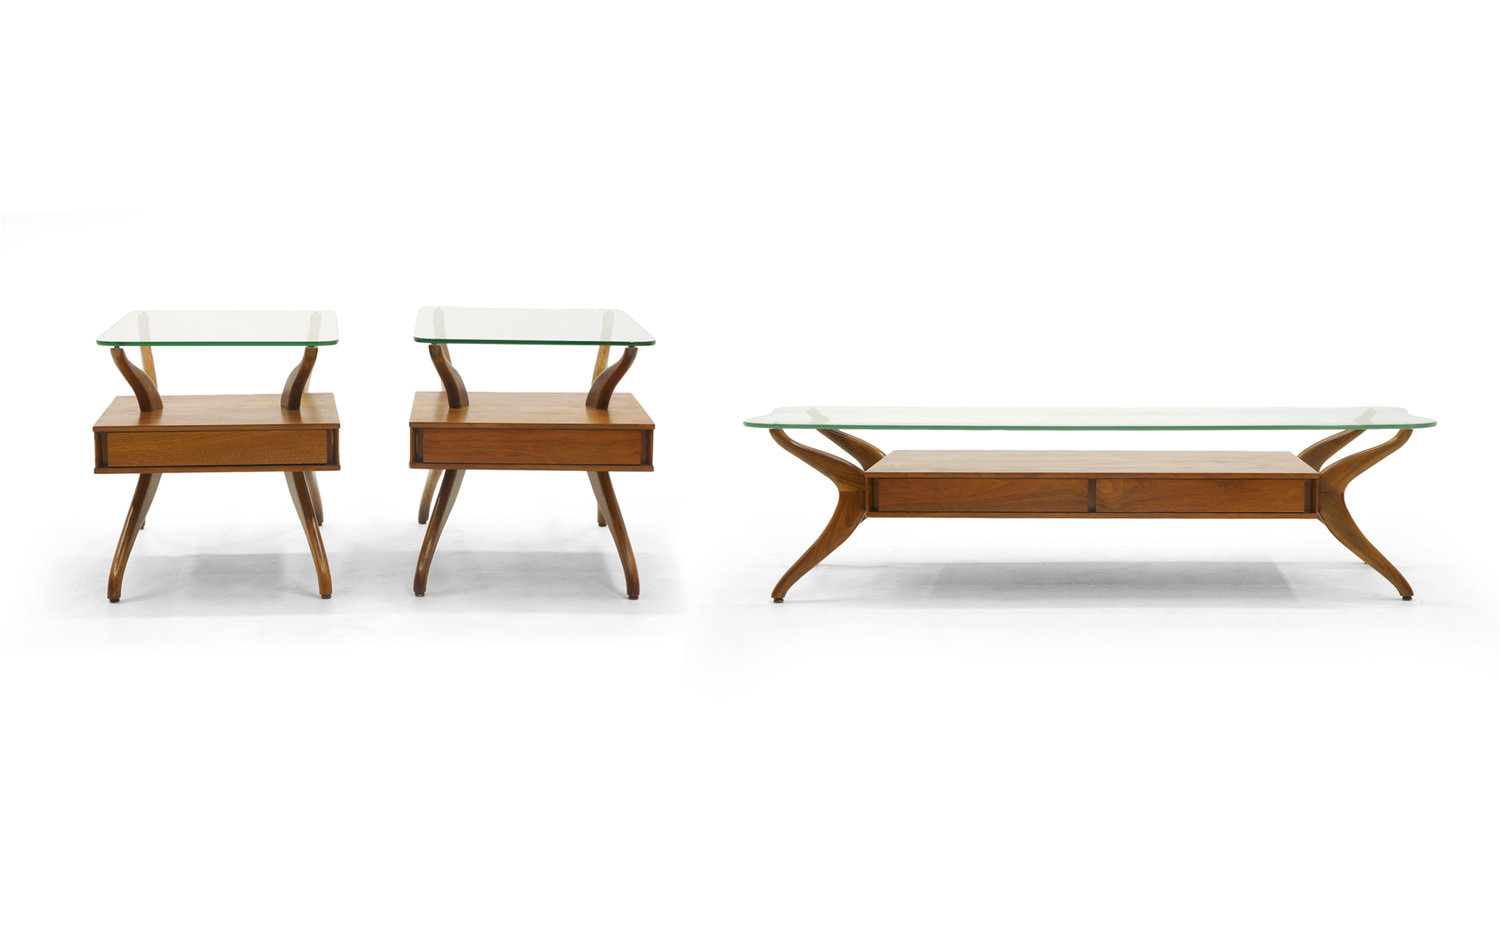 Pleasing Sculptural Coffee Table And Two End Tables In The Style Of Vladimir Kagan Retro Inferno Ocoug Best Dining Table And Chair Ideas Images Ocougorg